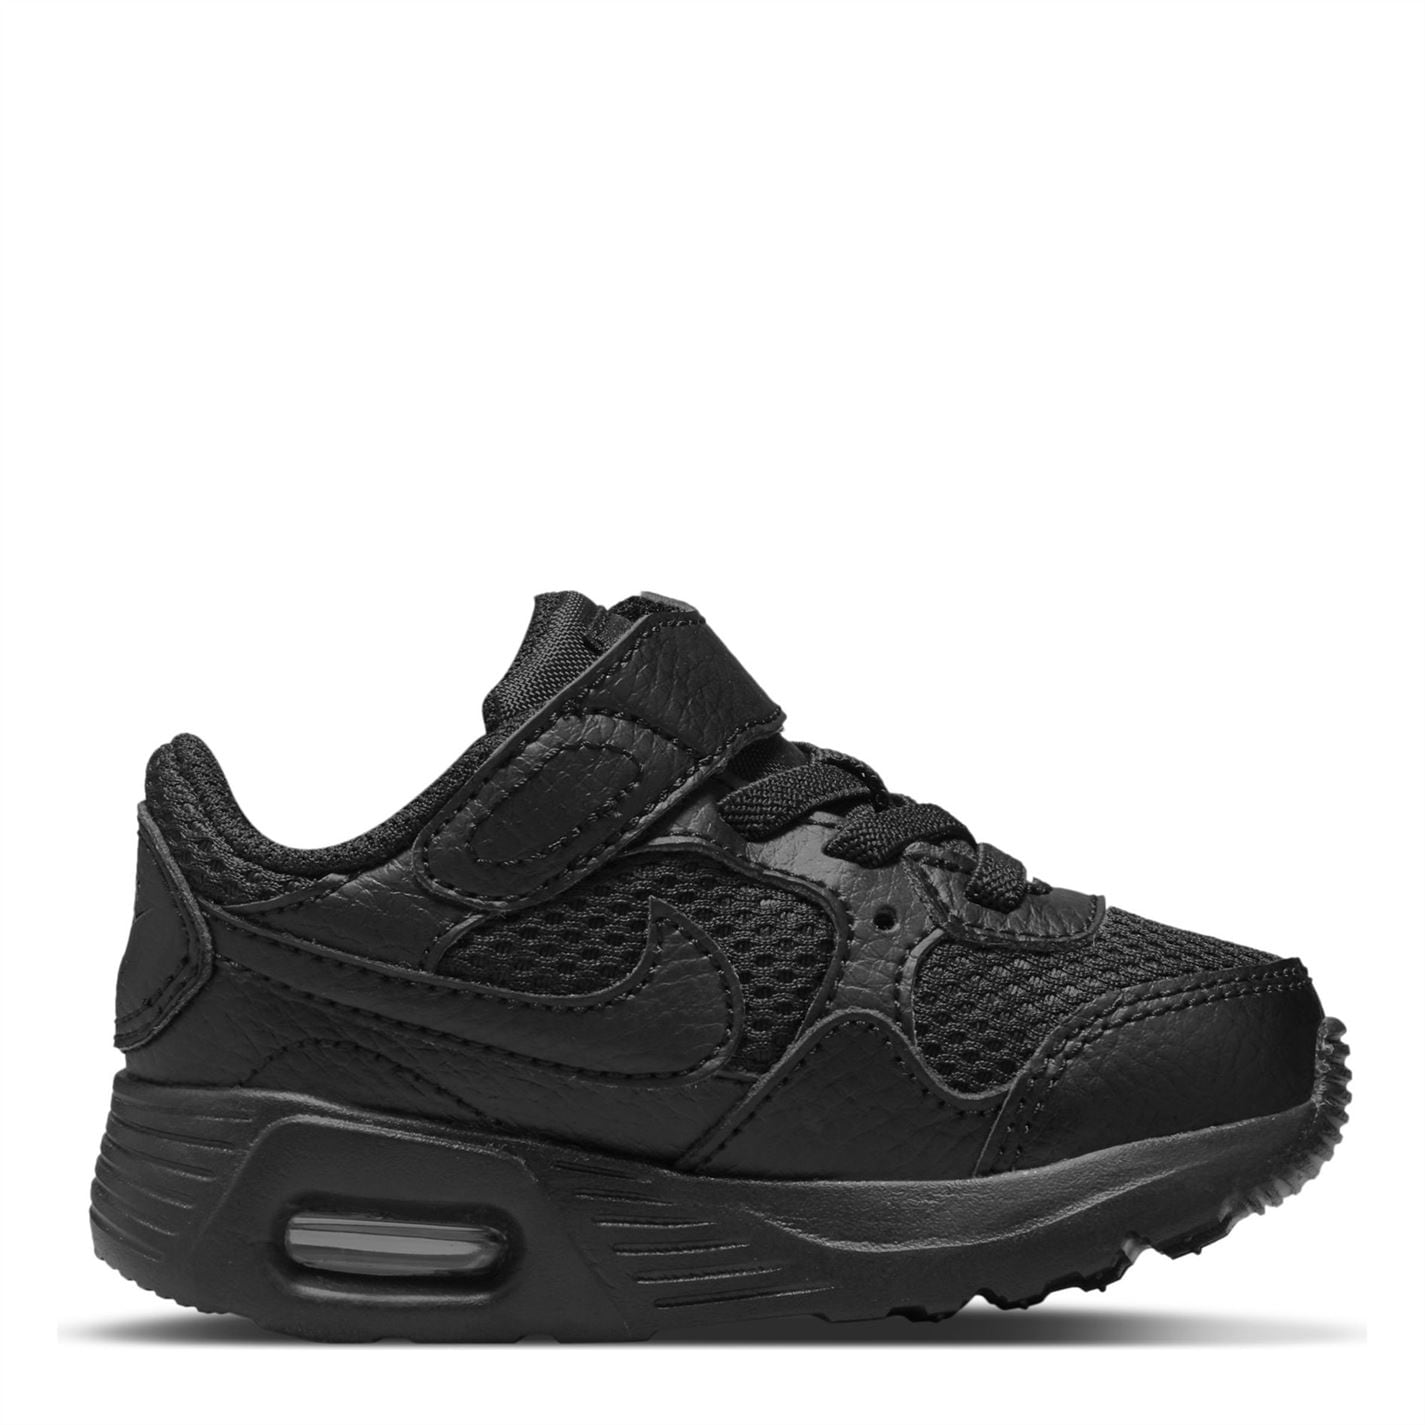 Nike Air Max Baby/Toddler Shoe Triple Black